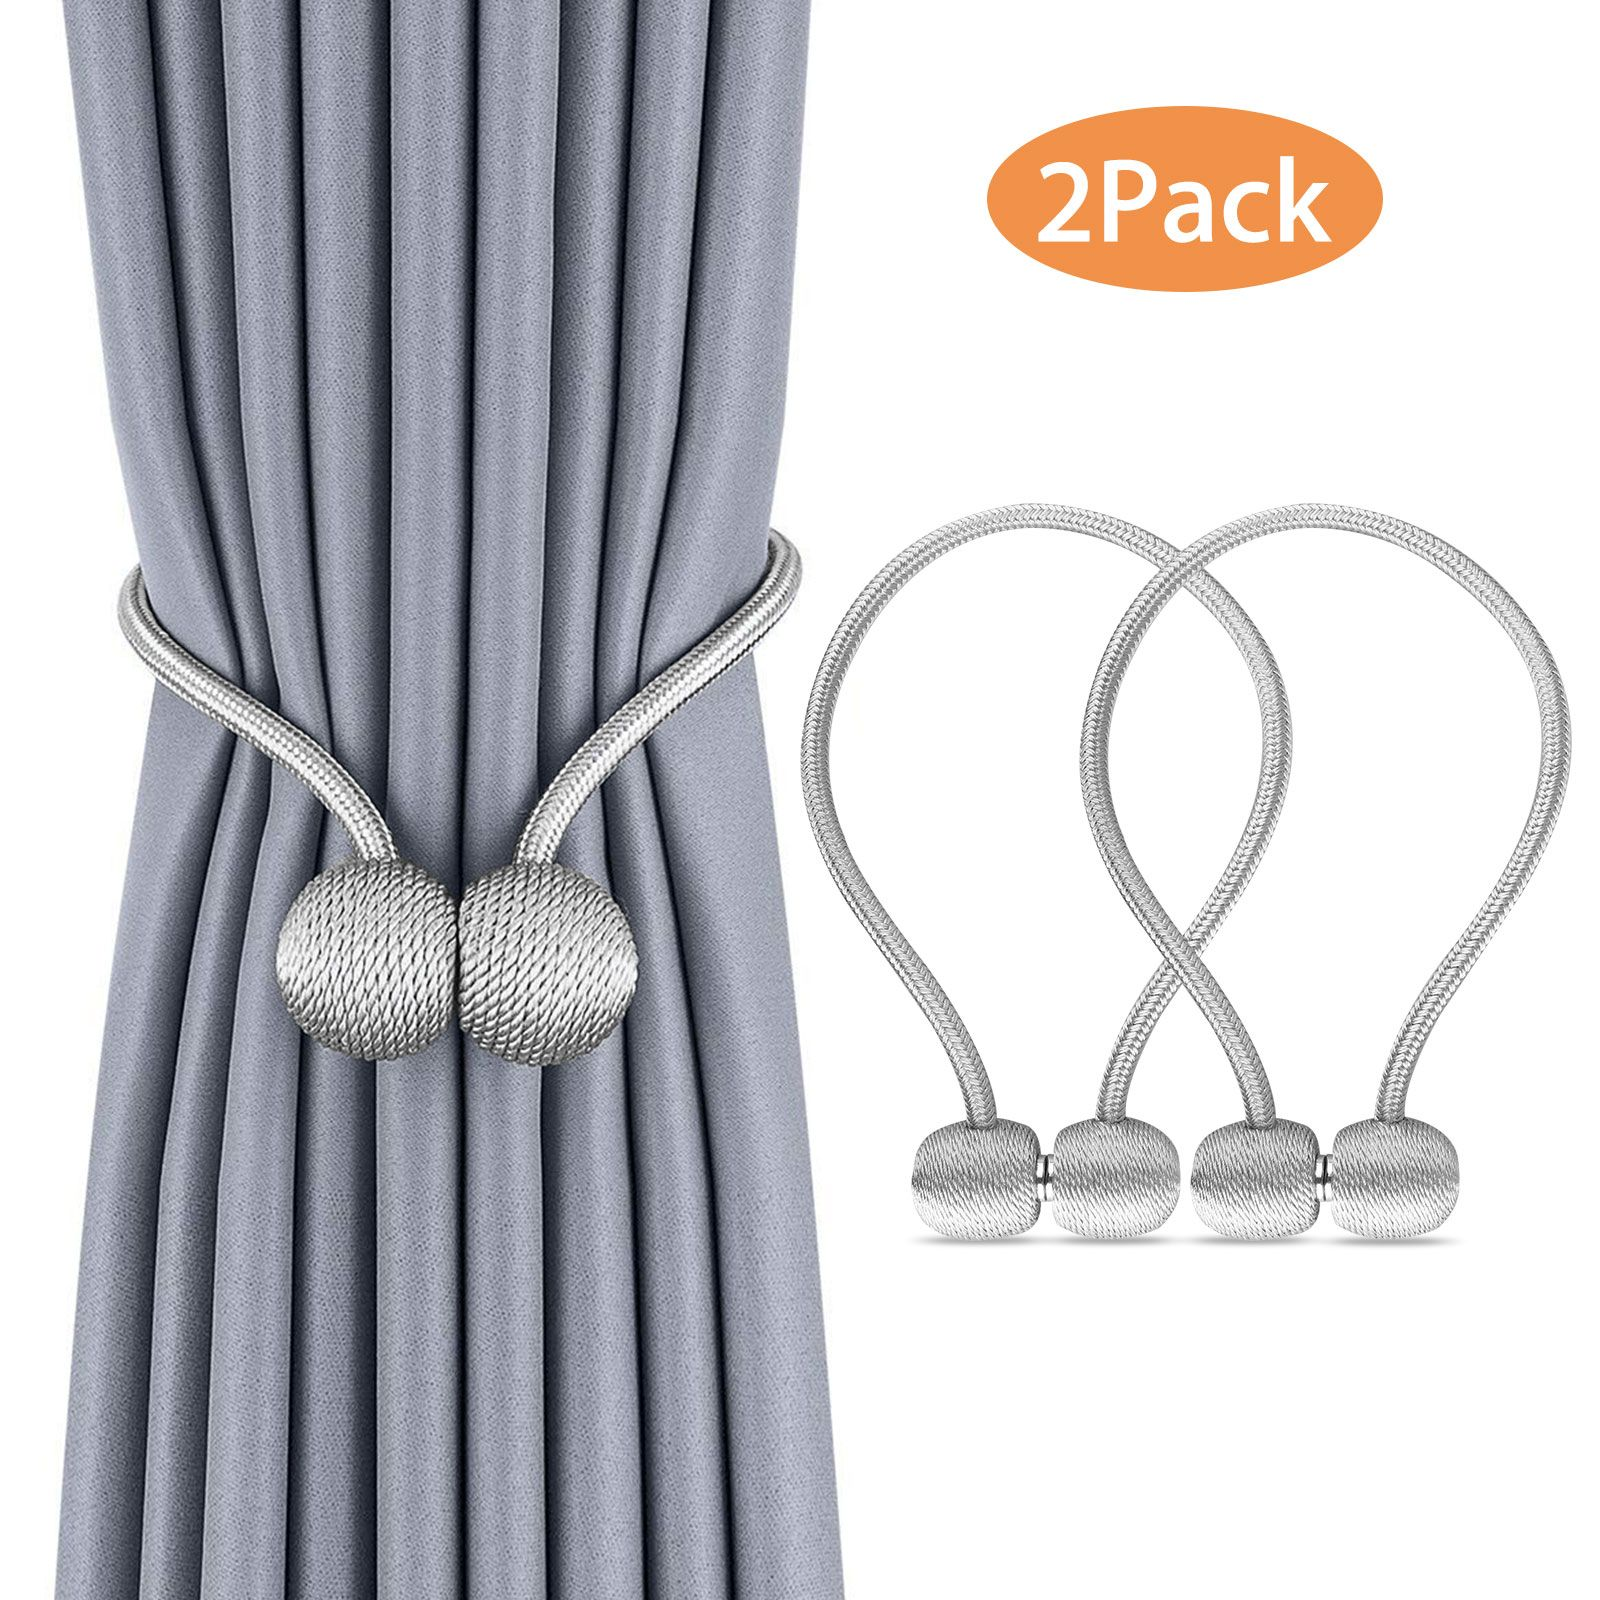 Home With Images Curtain Tie Backs Magnetic Curtain Curtains